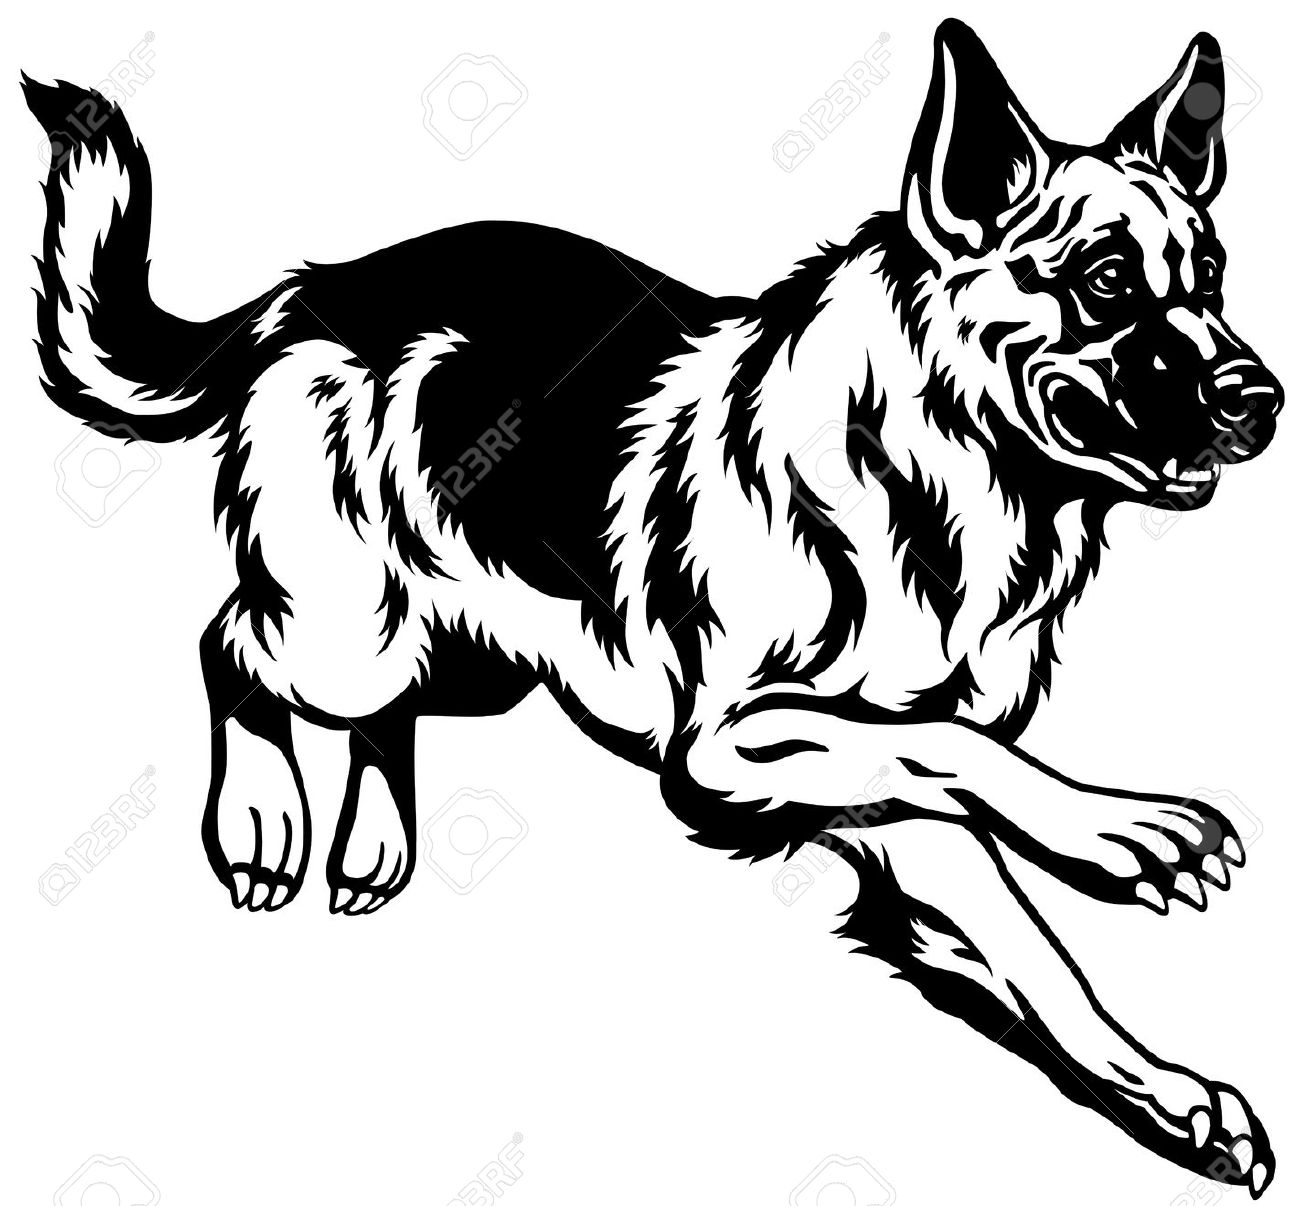 1300x1206 Image Result For Dog Breed Vectors Animal Silhouettes, Vectors